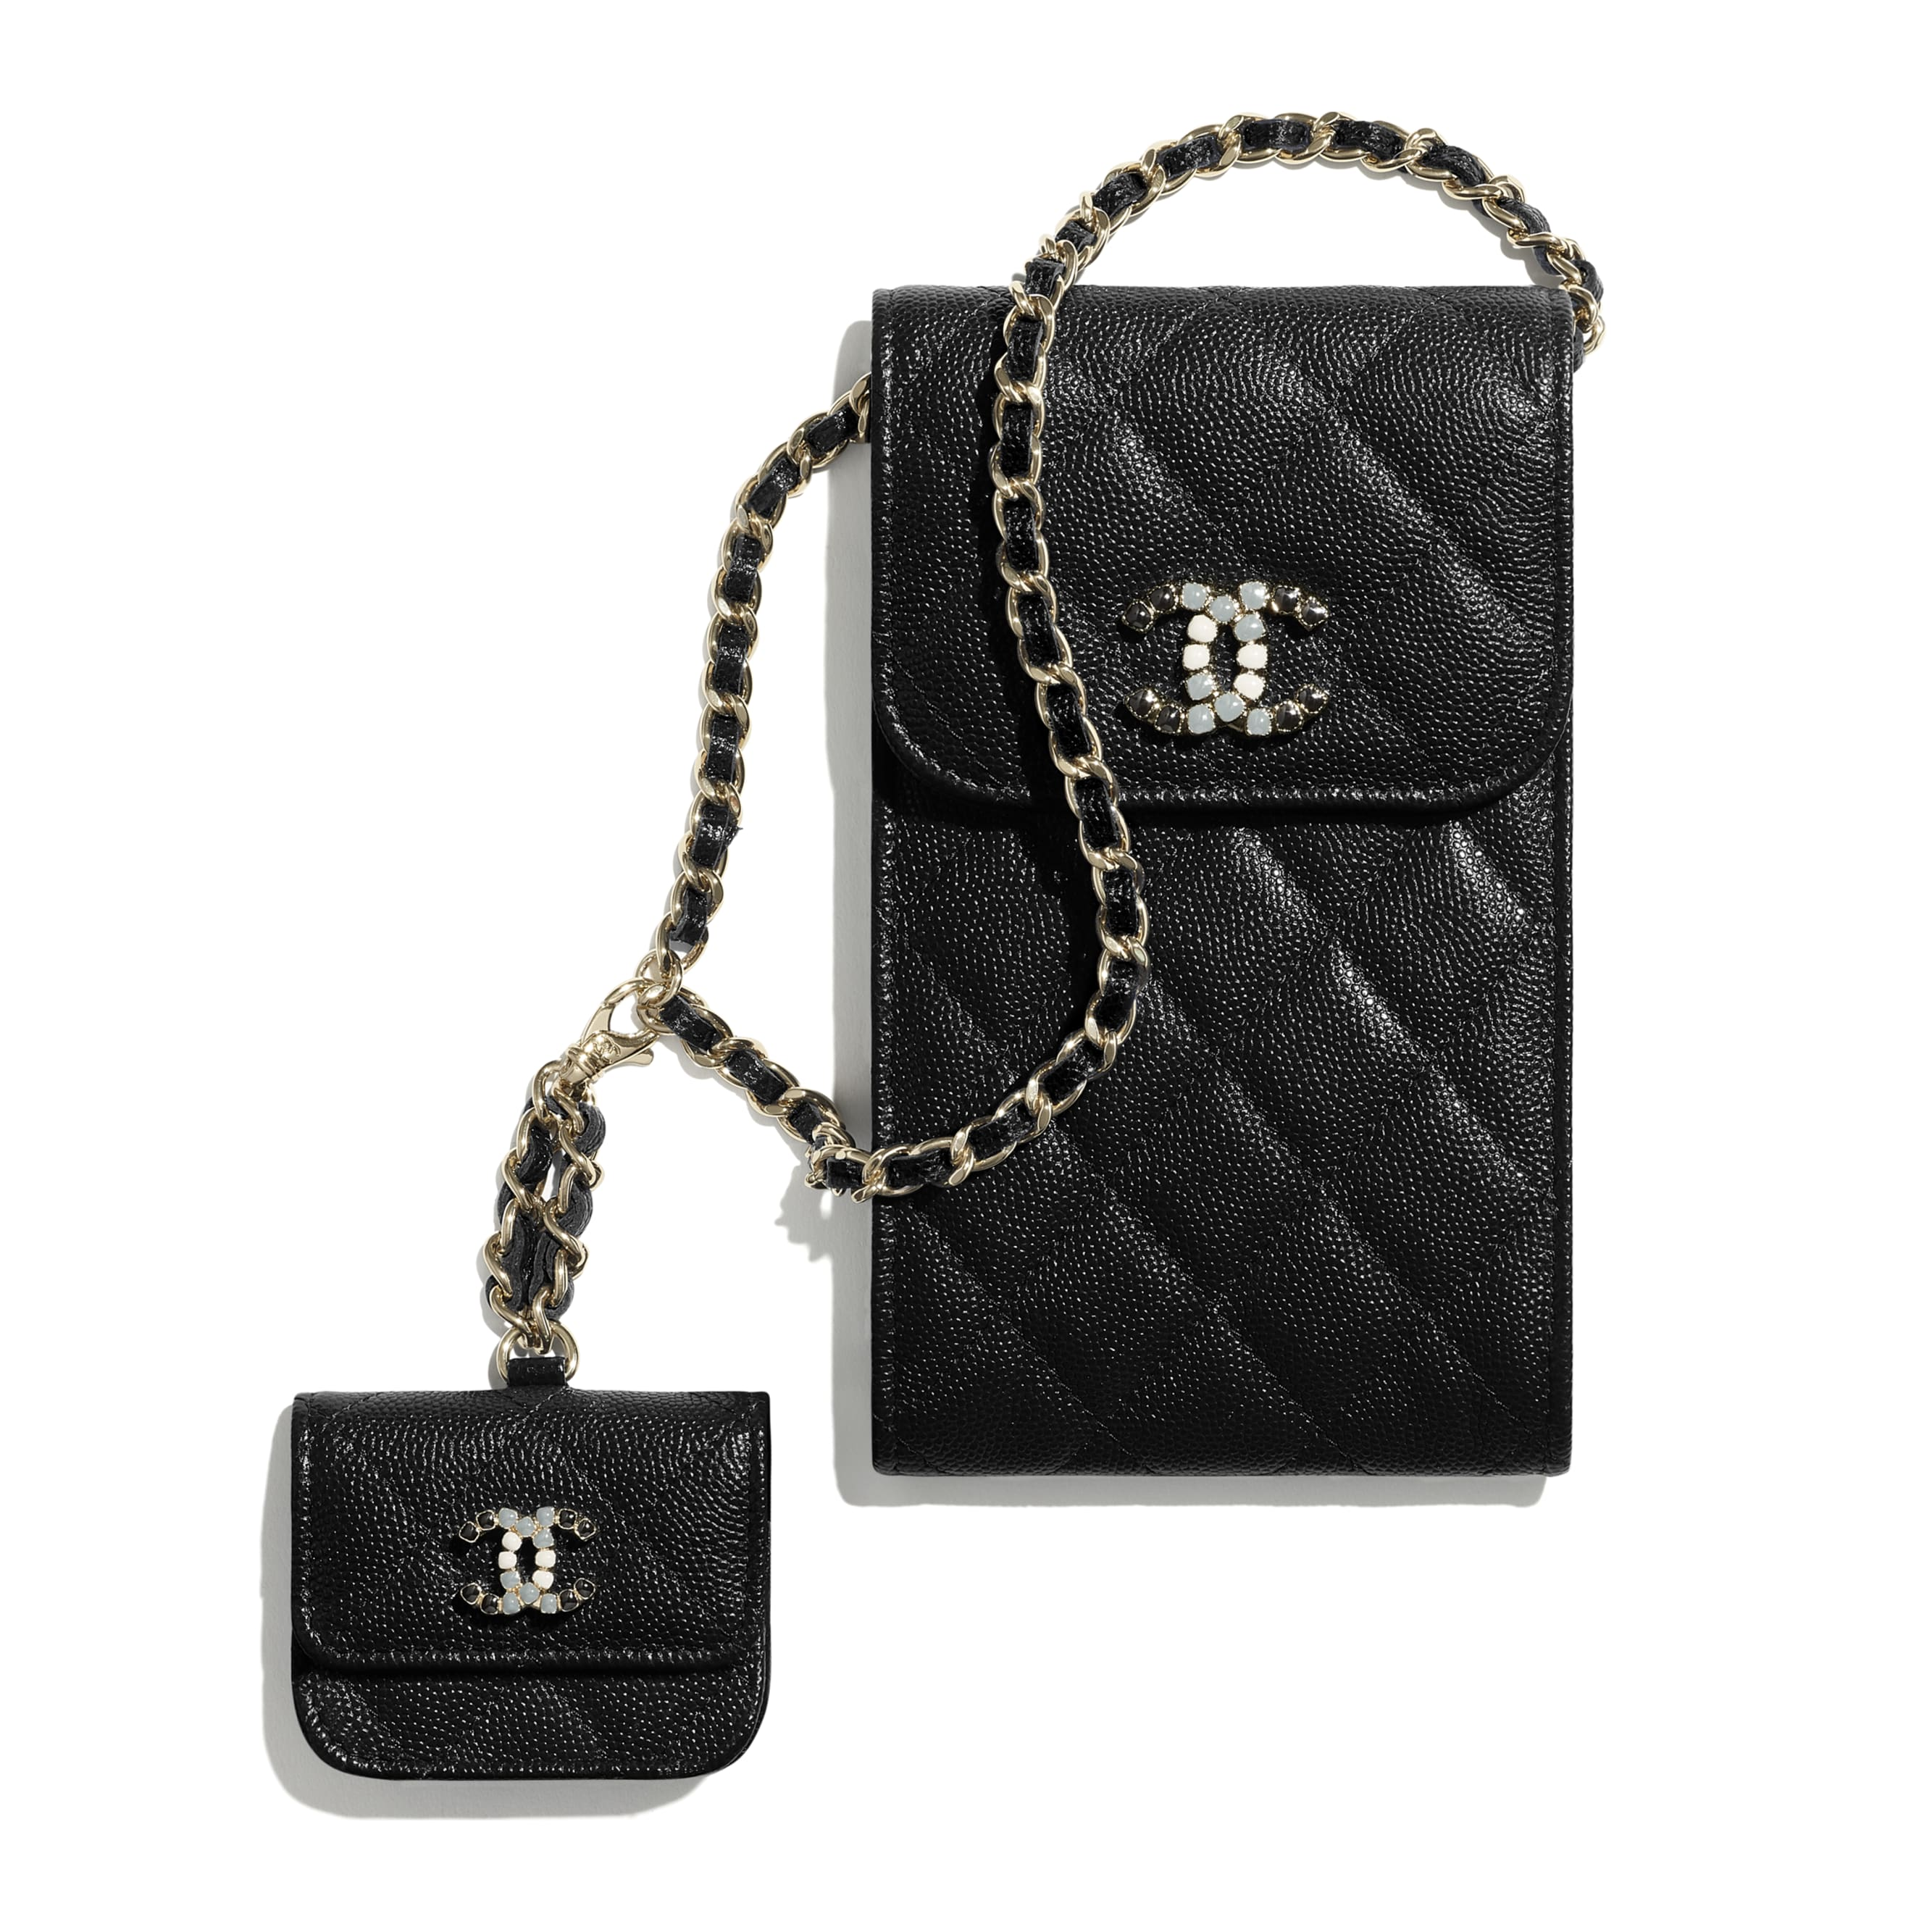 Phone & Airpods Case with Chain - Black - Grained Calfskin & Laquered Gold-Tone Metal - CHANEL - Default view - see standard sized version